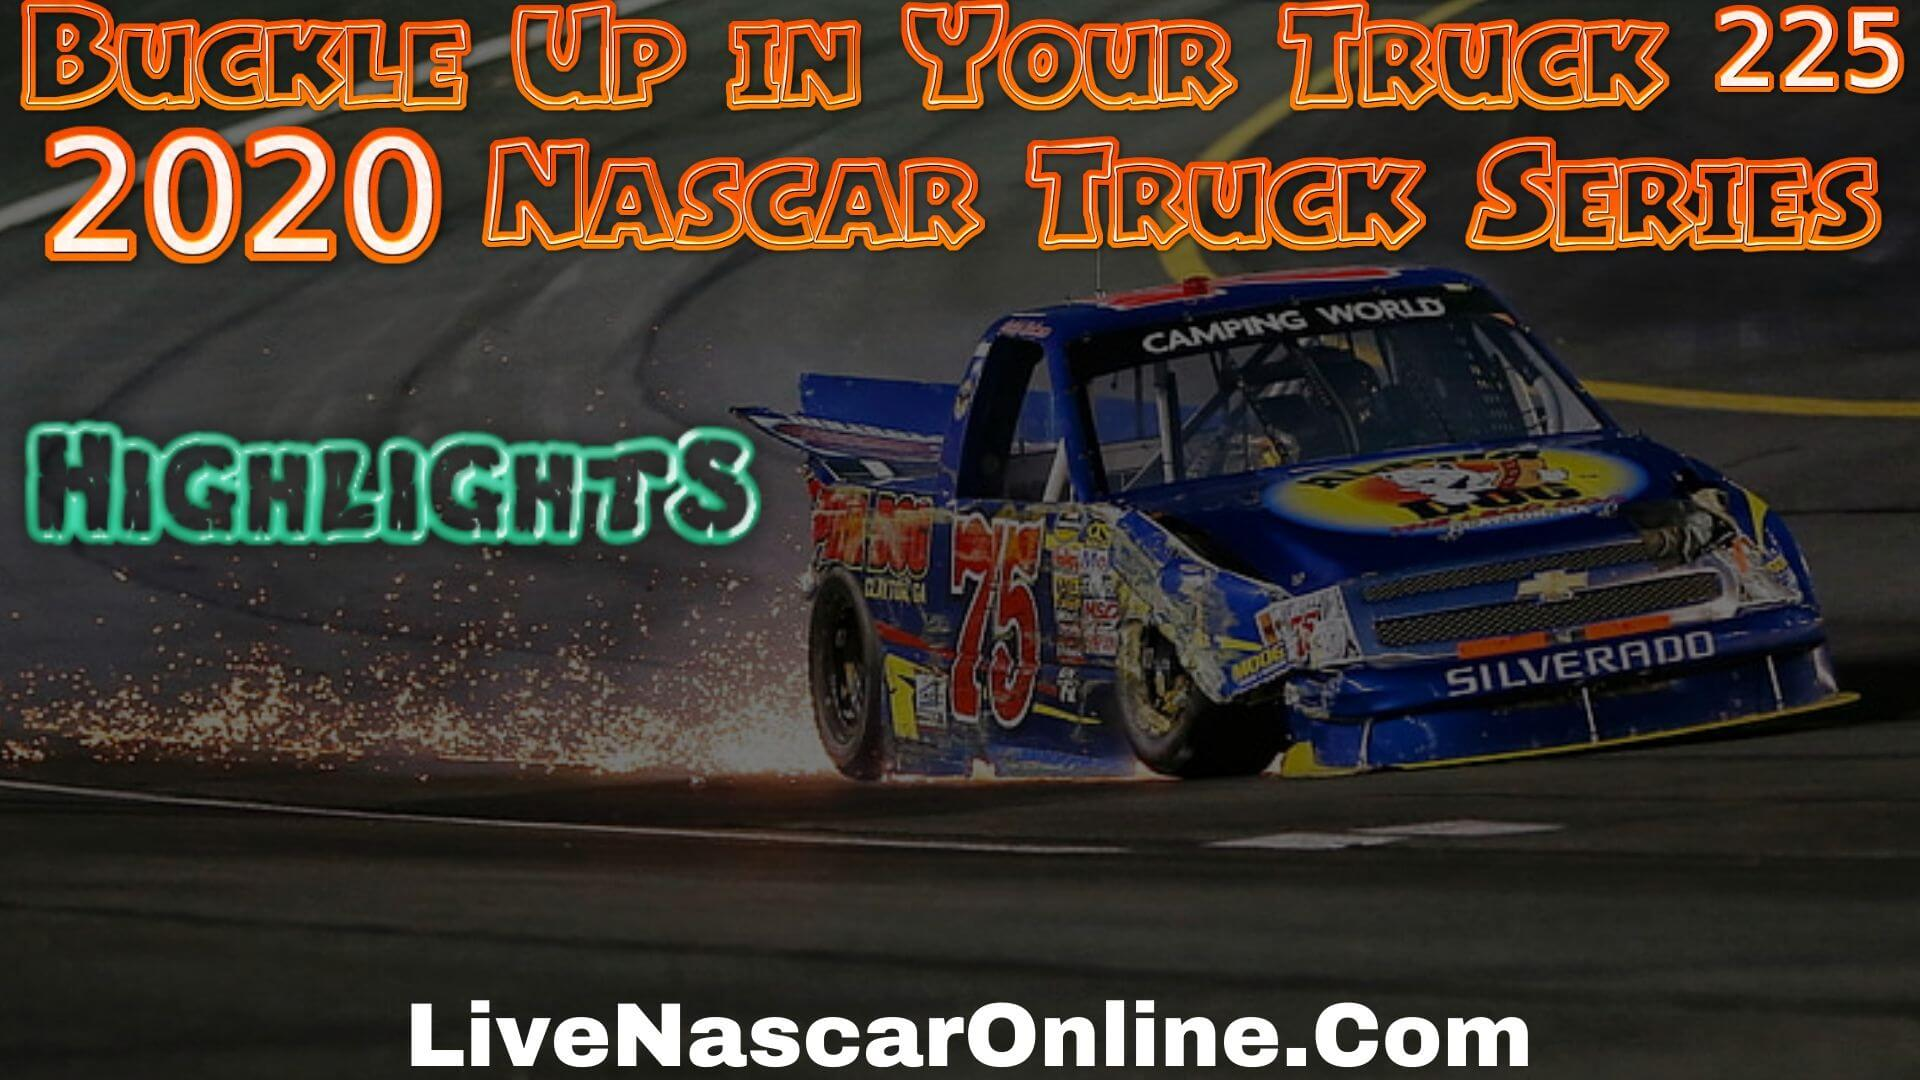 Nascar Buckle Up in Your Truck 225 Highlights 2020